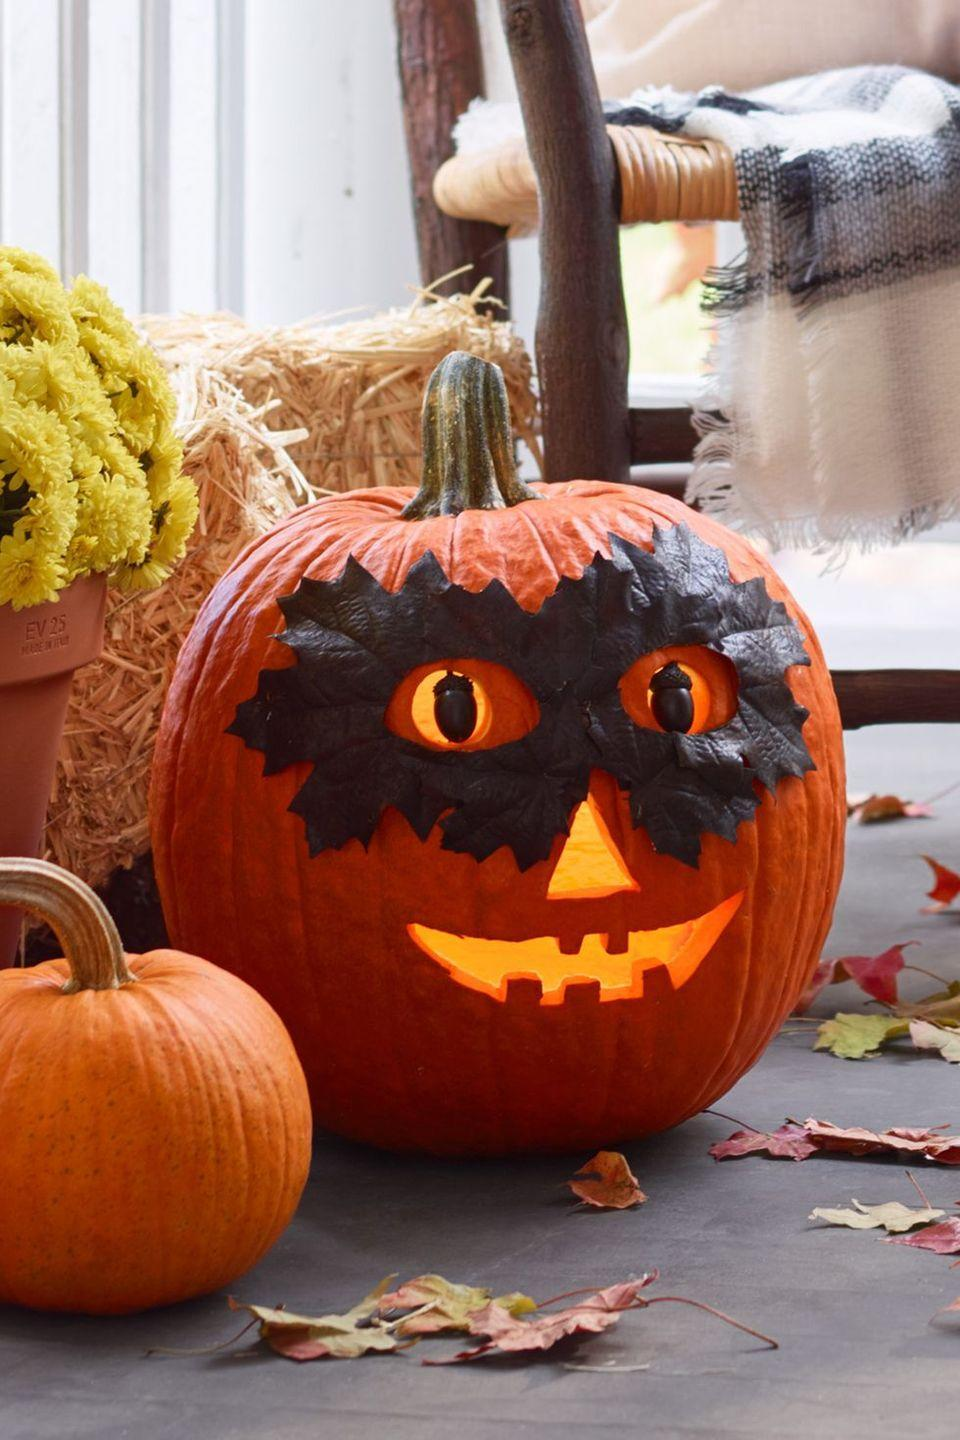 <p>Don't worry, this masked pumpkin won't steal your candy. His leaf mask is only there to help keep the mystery alive!</p><p><strong>Make the Masked Pumpkin:</strong> Paint eight real or artificial leaves with black spray paint; let dry. Layer leaves into a mask shape; hot-glue together. Cut eyeholes in mask. Trace eyeholes onto large orange pumpkin; carve. Glue black-painted acorns to straight pins, then push into eyeholes for pupils. Secure leaf mask to pumpkin with hot glue.</p>